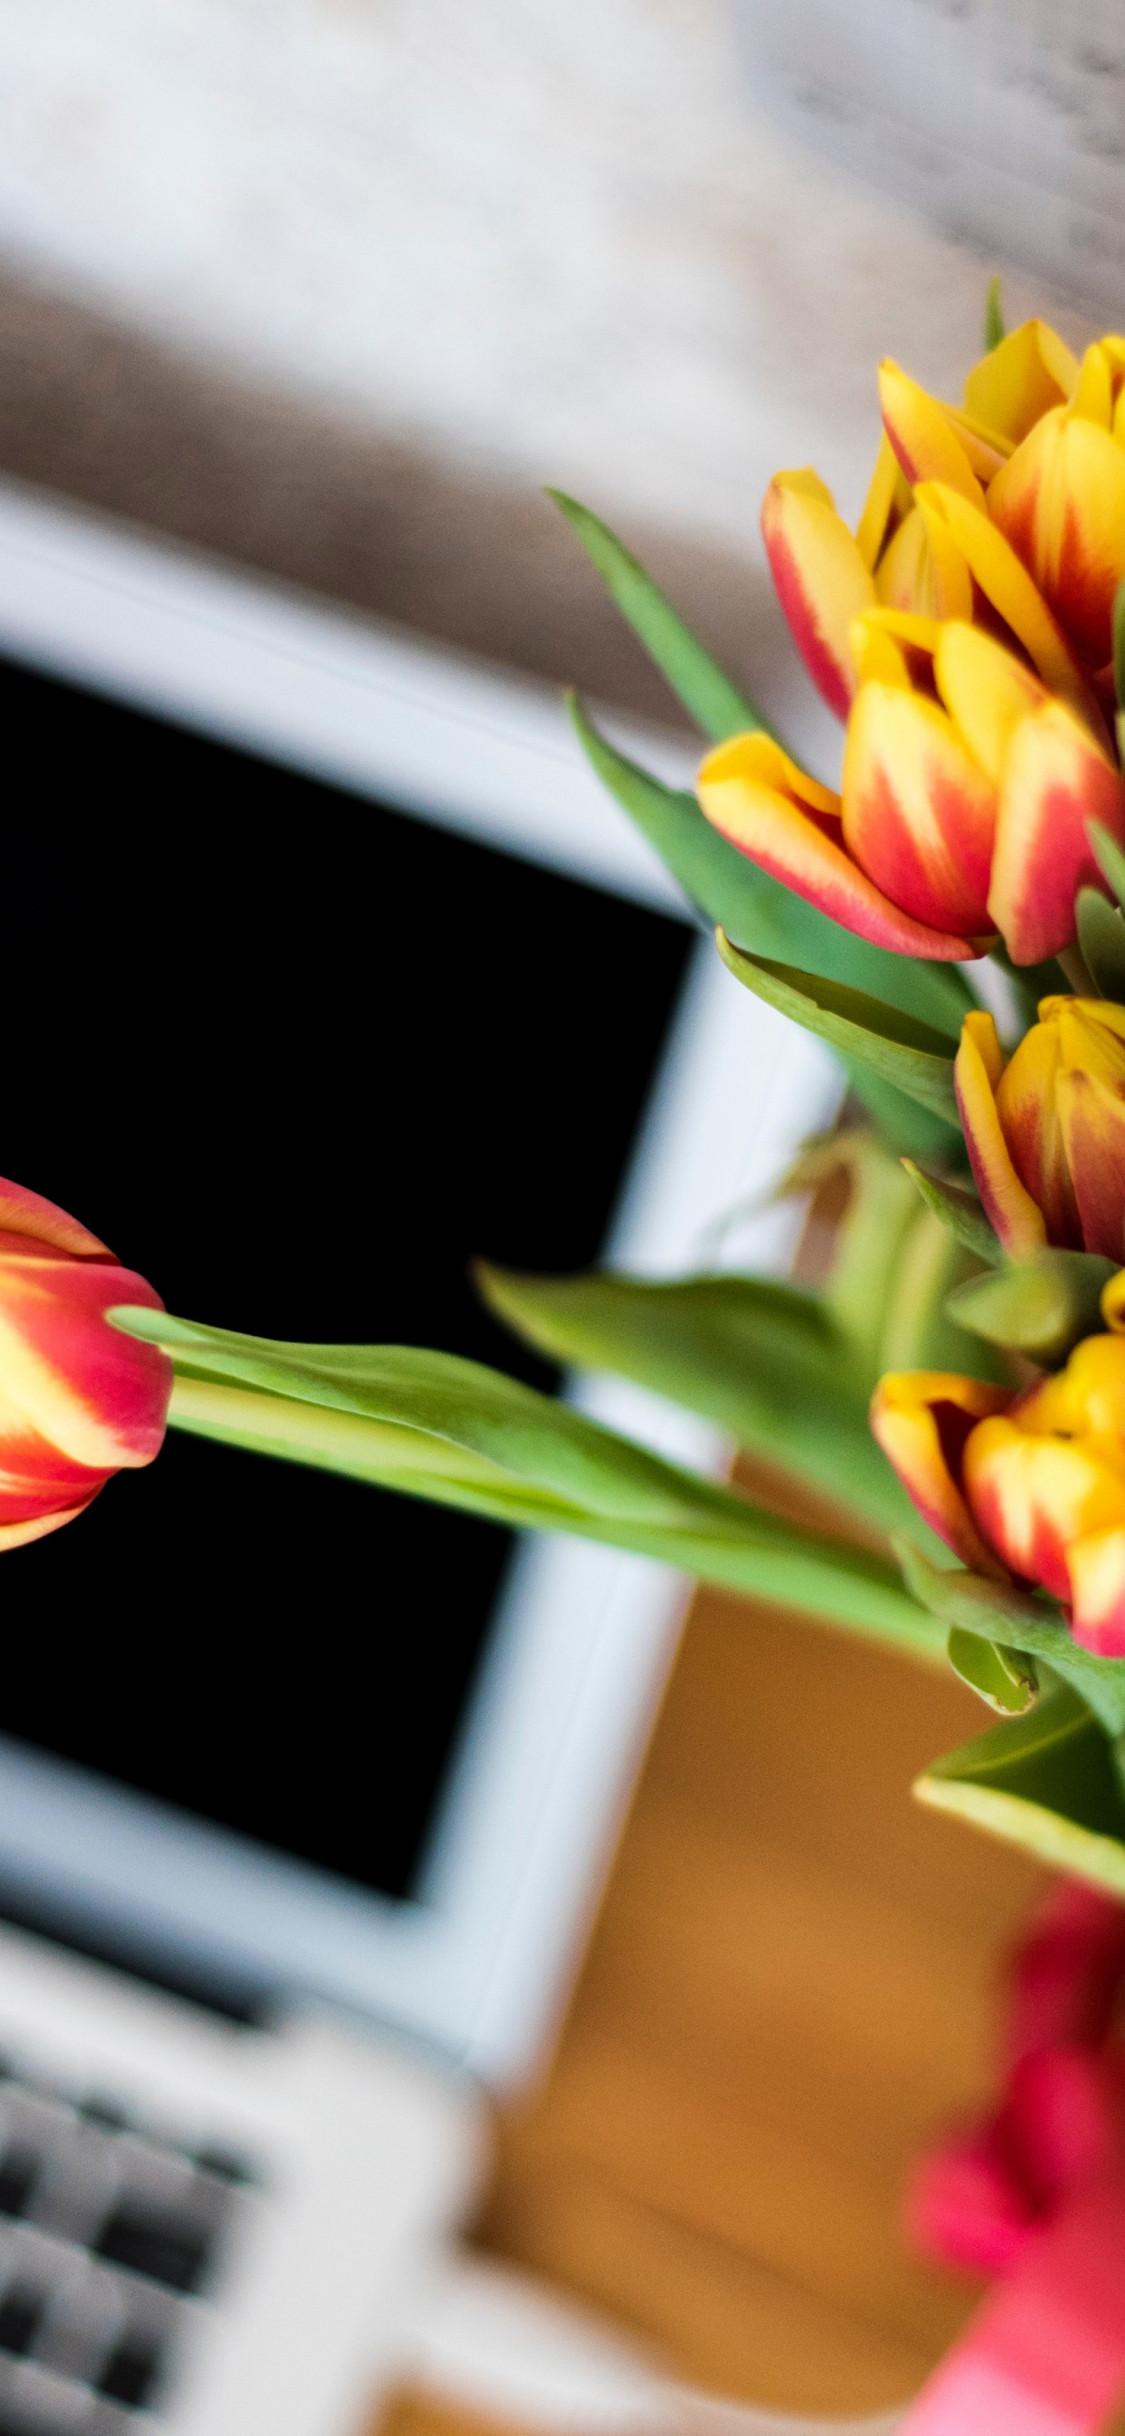 Laptop and tulips bouquet wallpaper 1125x2436